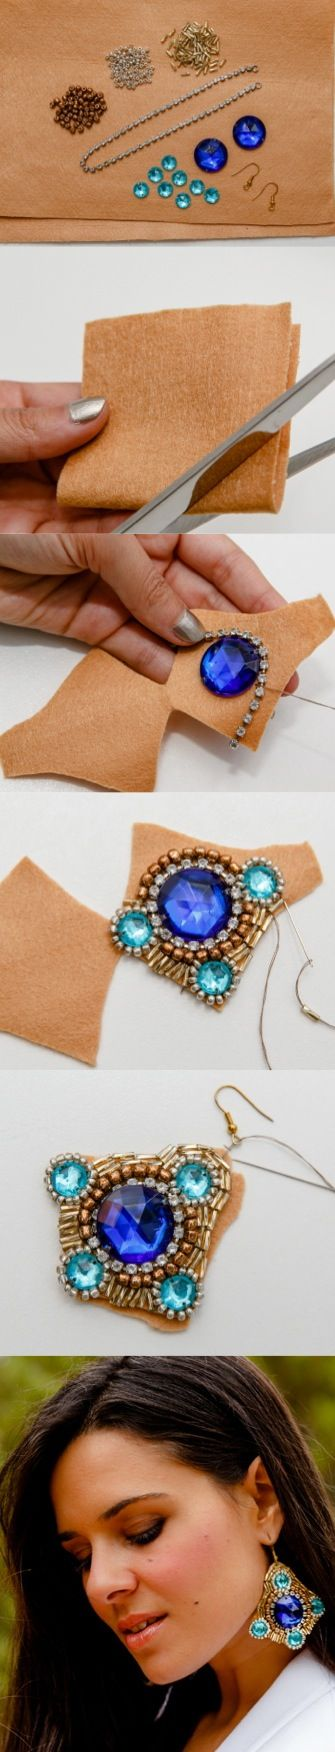 DIY Embellished Earrings: Embroidered on felt with beads - Free tutorial in Spanish - but good pictures and translation available.